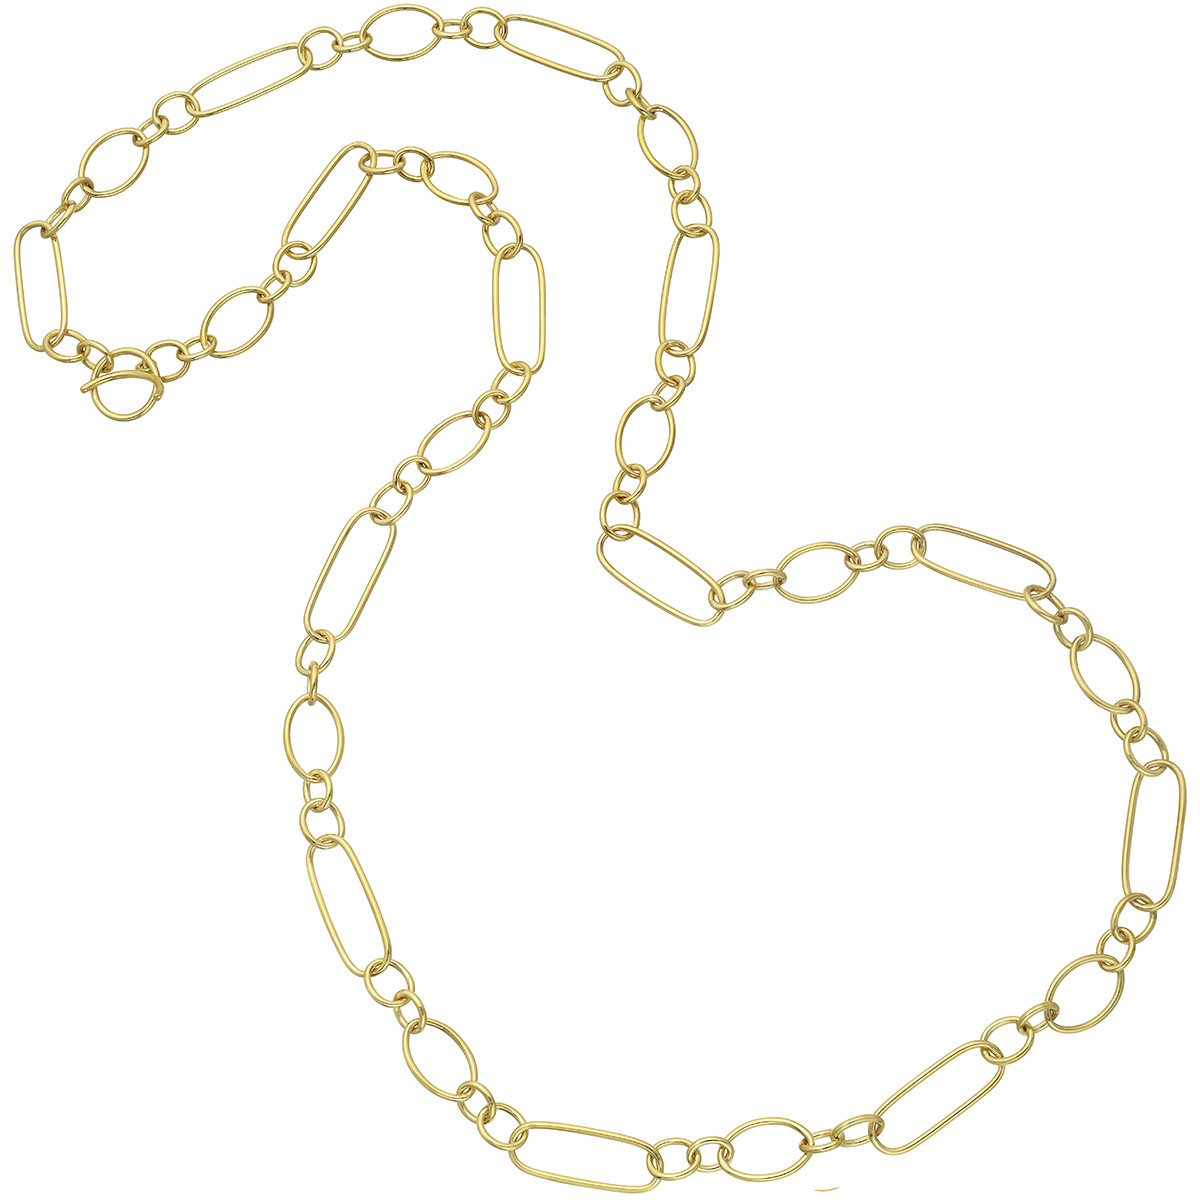 18k Yellow Gold Mixed Oval Link Long Necklace